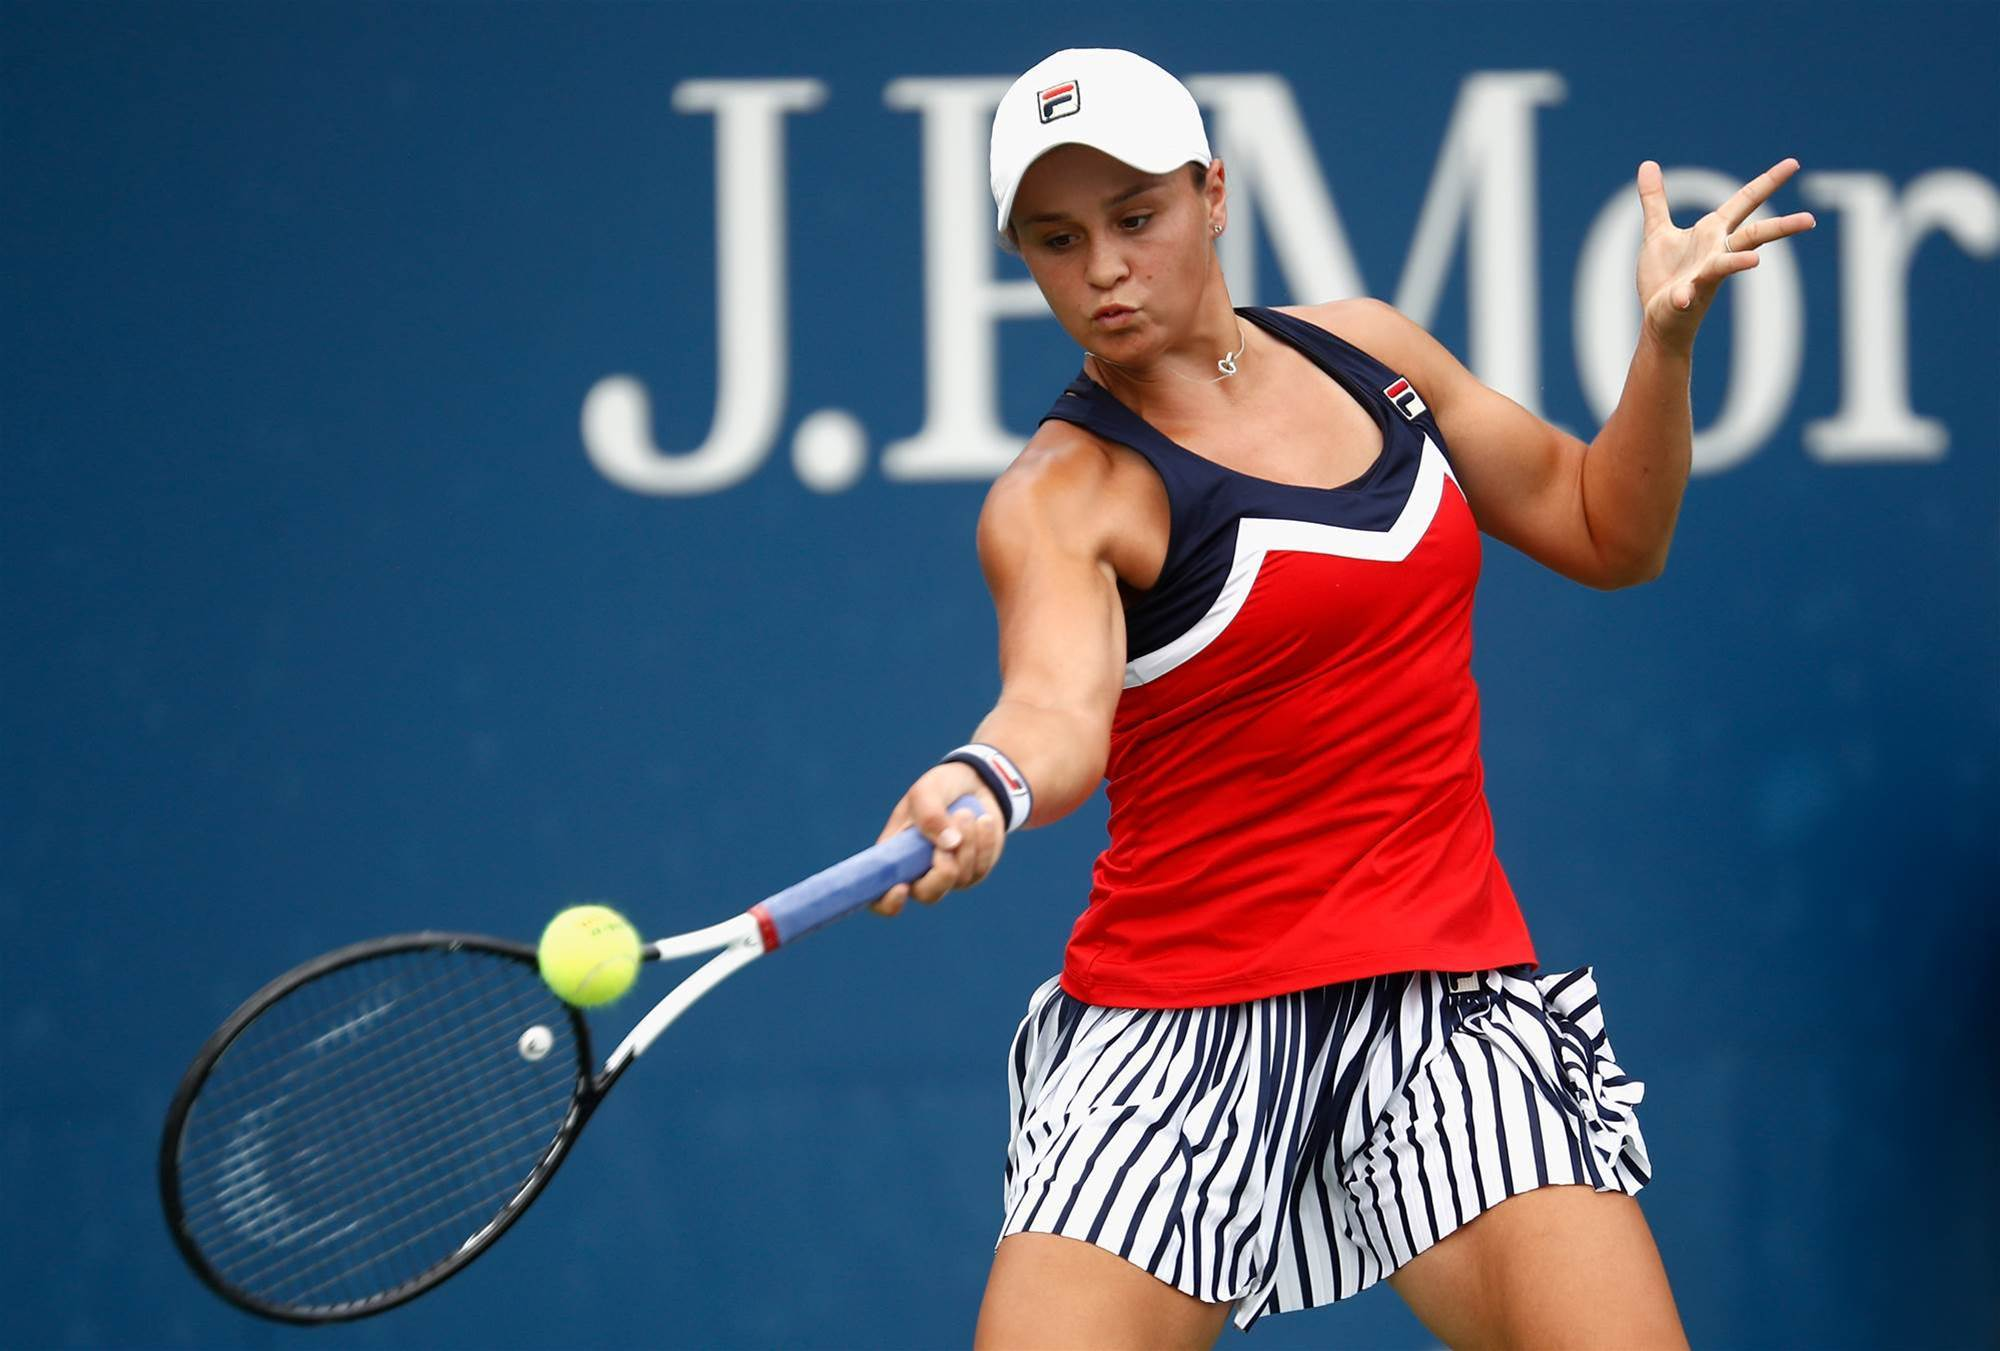 Barty's US Open singles campaign ends